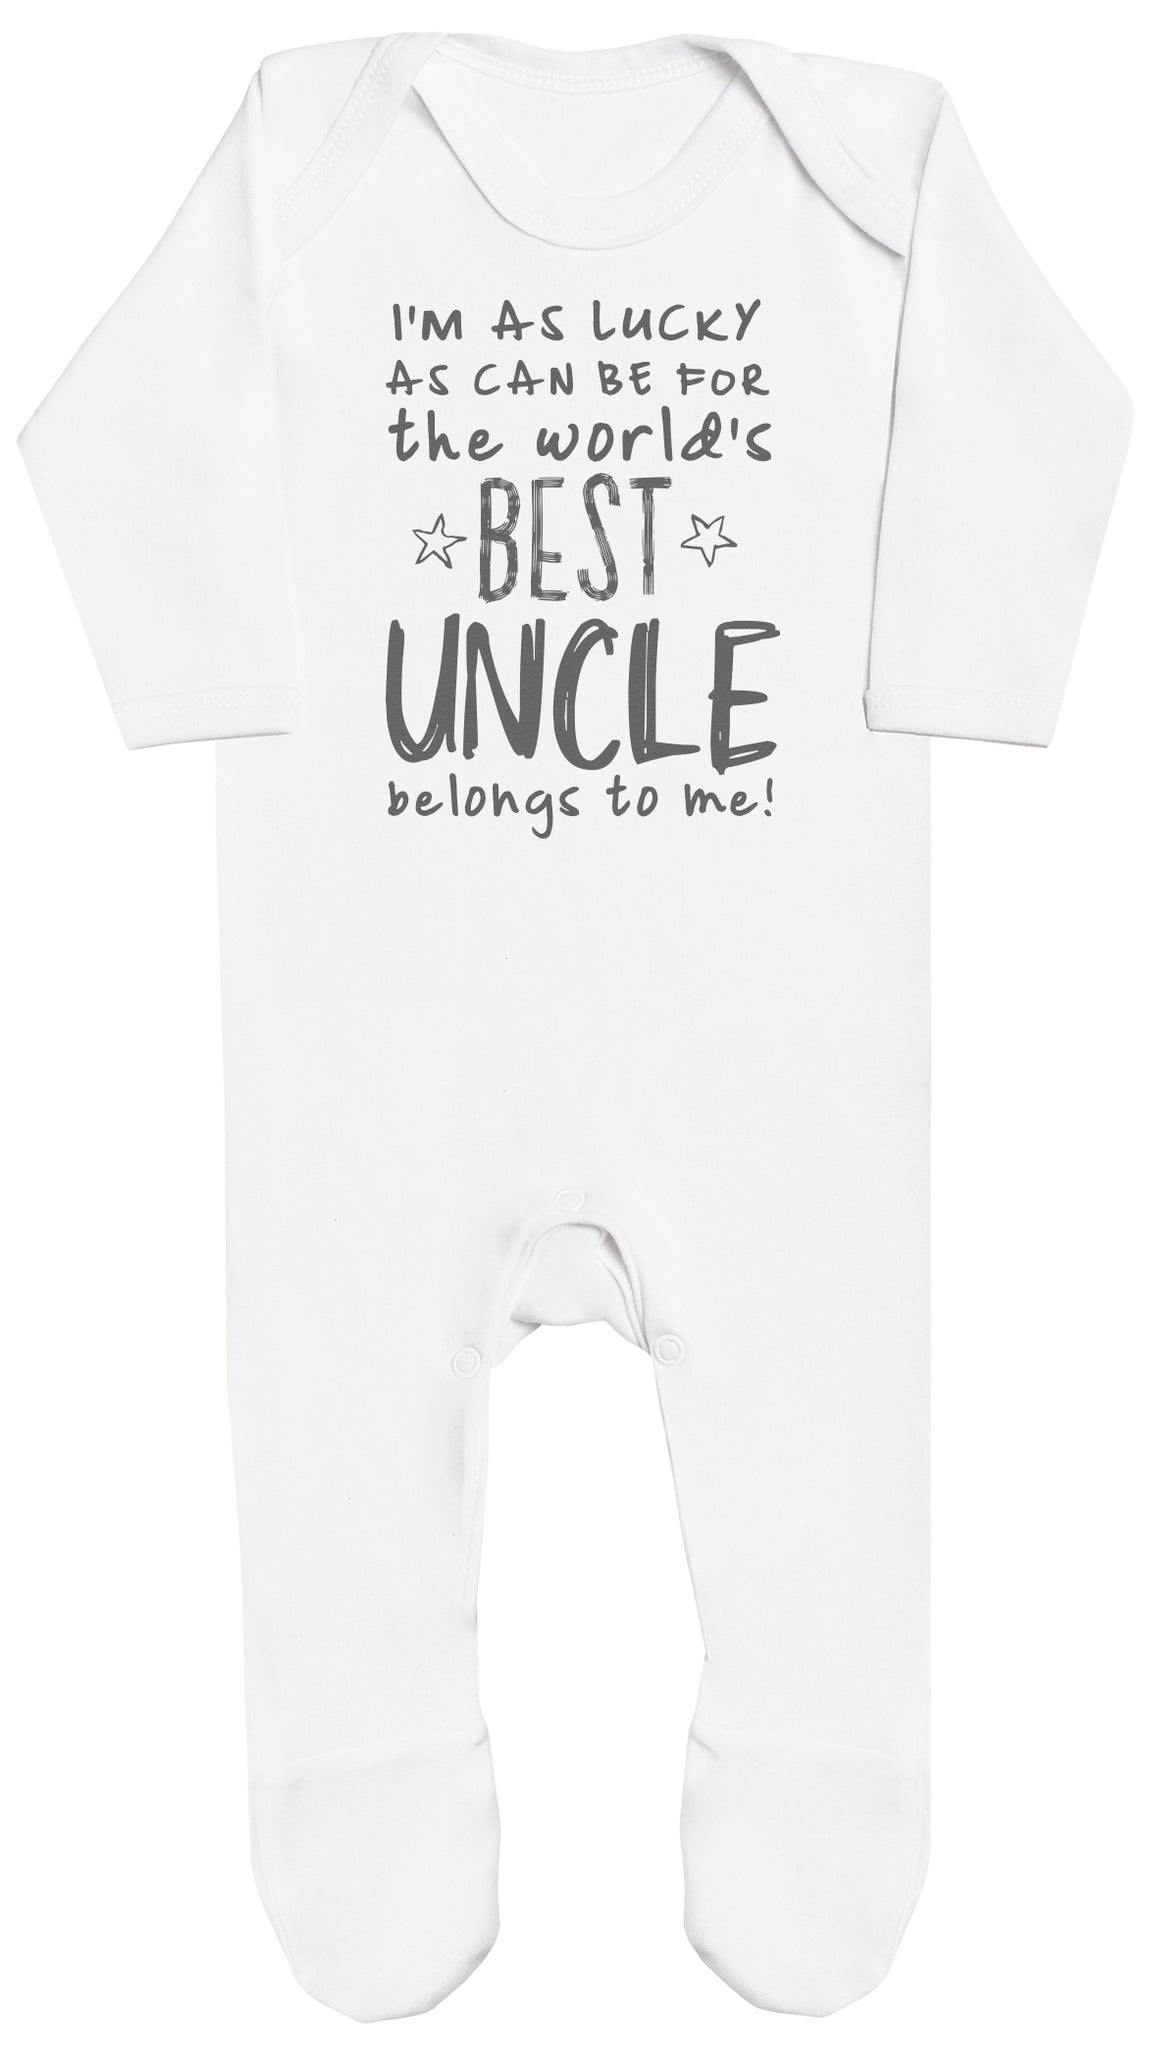 I'm As Lucky As Can Be Best Uncle belongs to me! Baby Romper